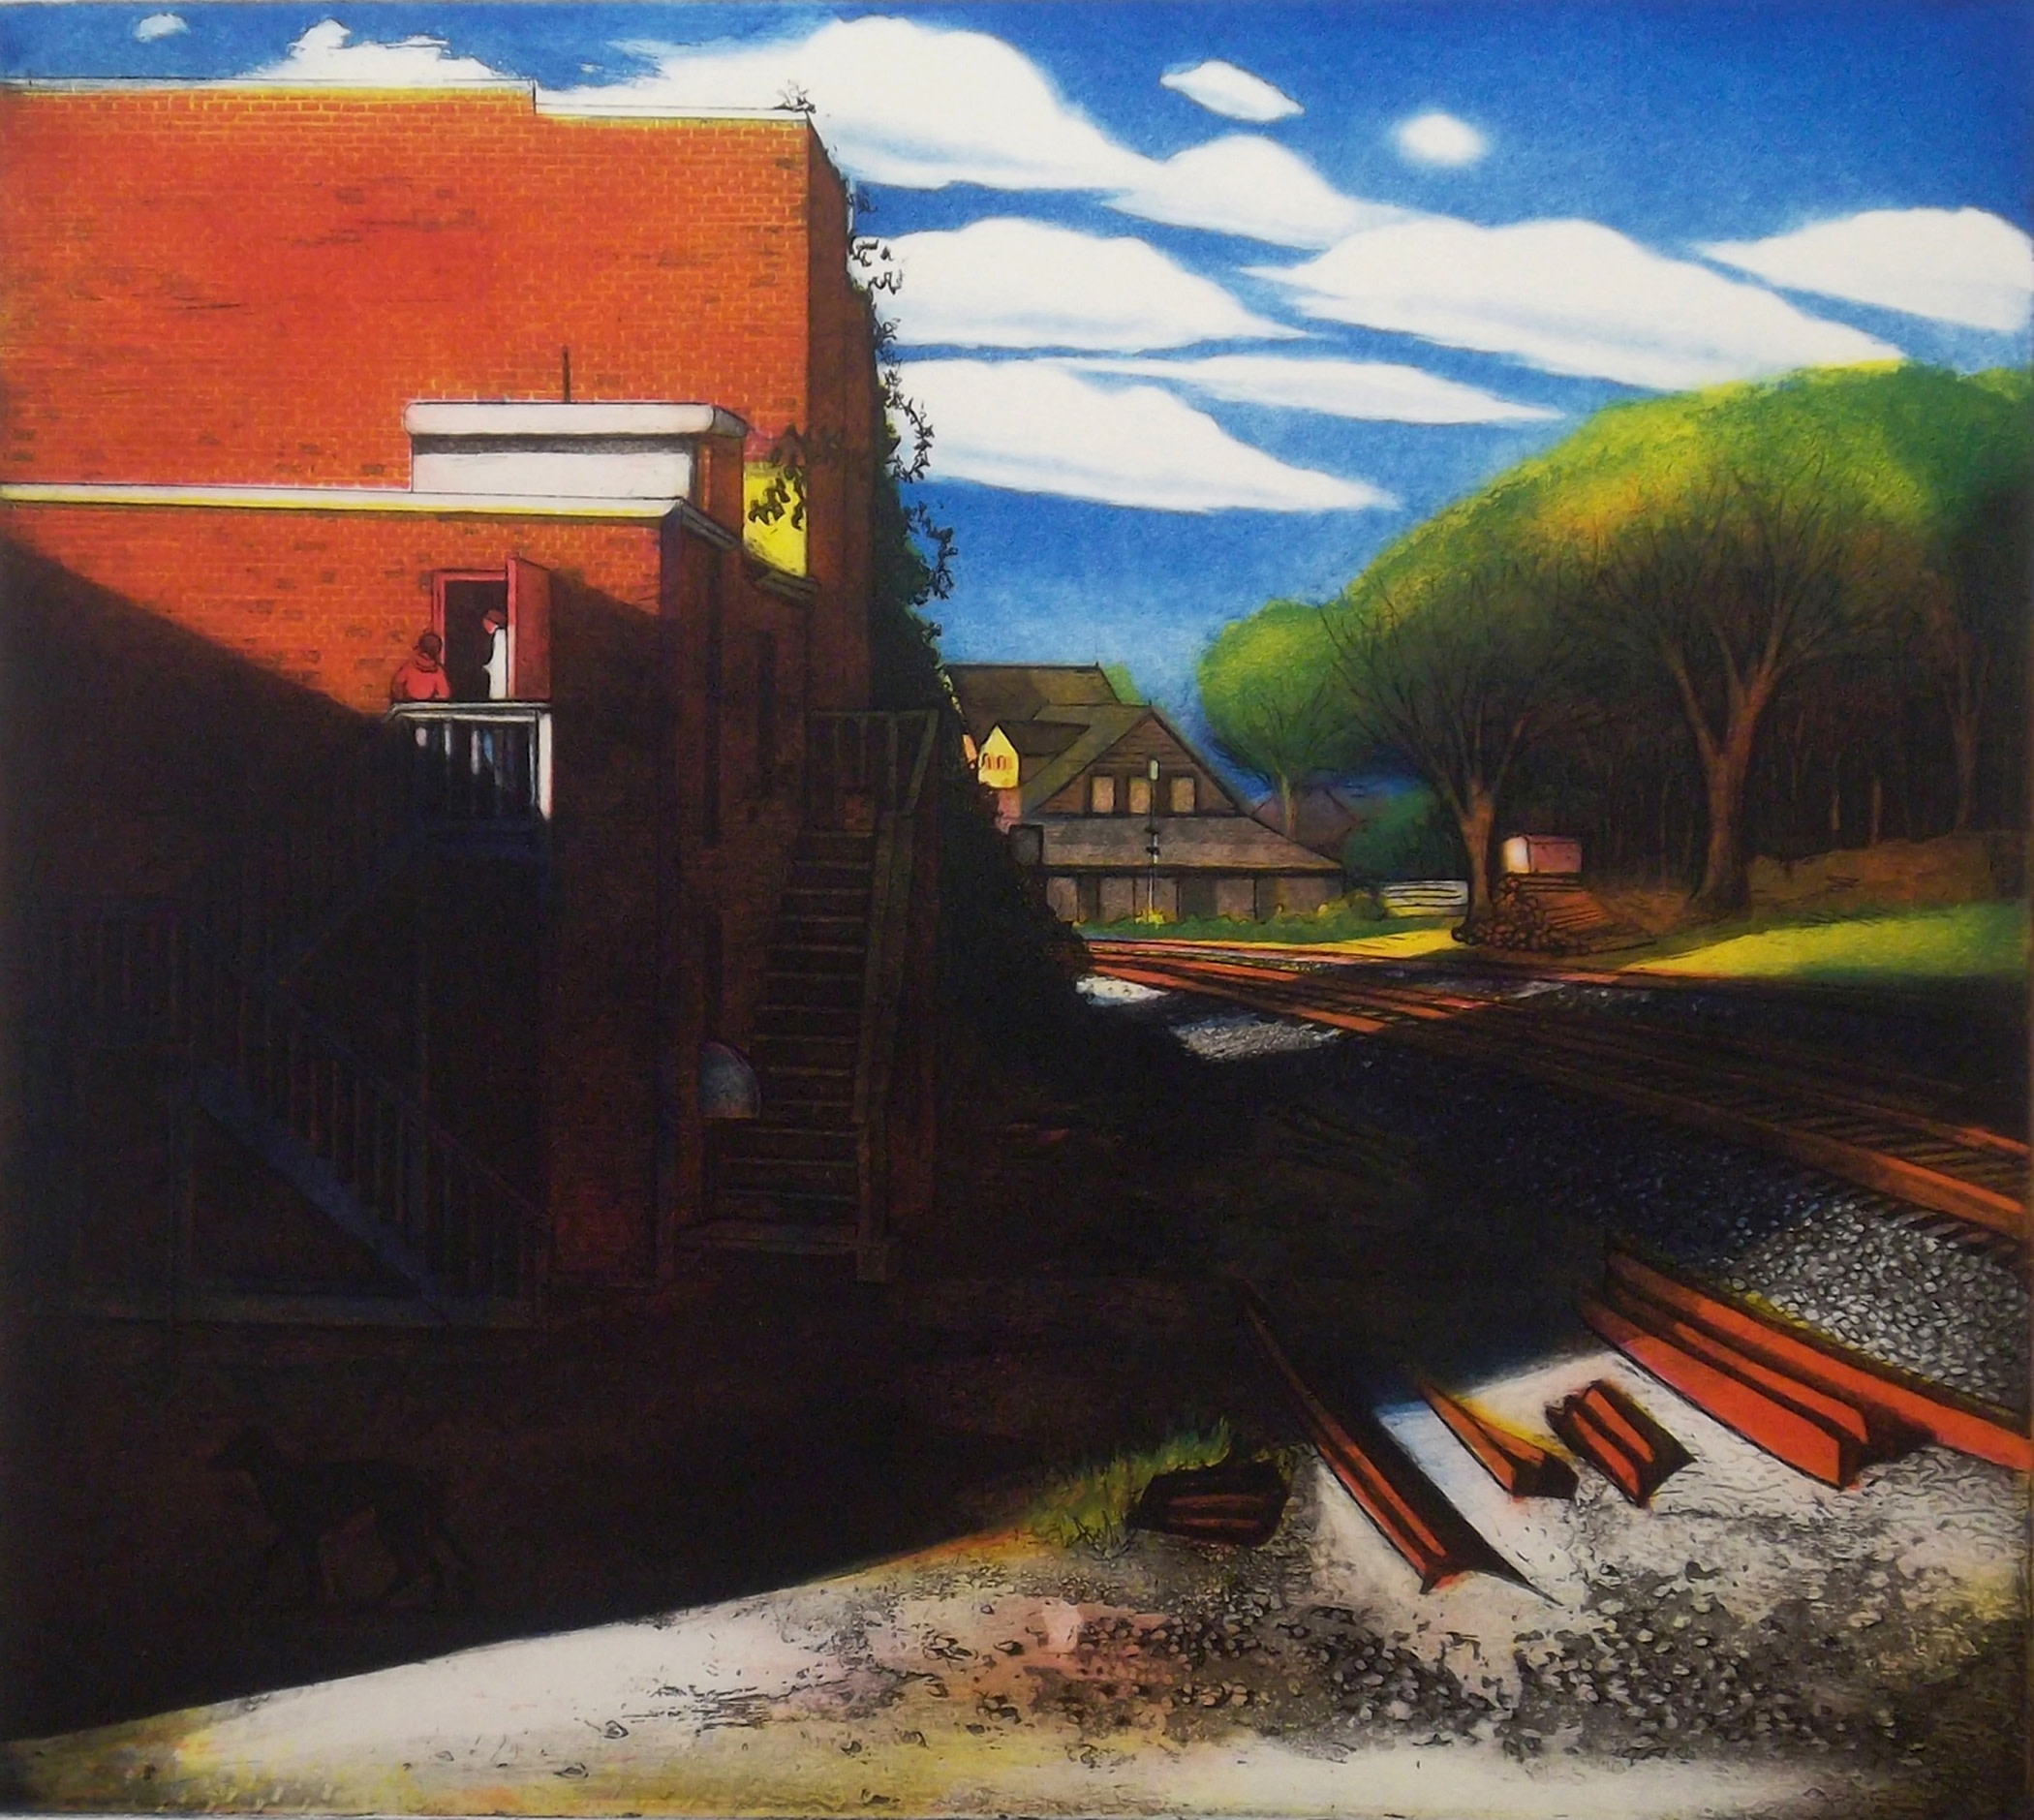 """<span class=""""link fancybox-details-link""""><a href=""""/exhibitions/17/works/image_standalone809/"""">View Detail Page</a></span><p><strong>Mary Teichman</strong></p><p>Tracks</p><p>copper etching and aquatint, ed of 50</p><p>61 x 64cm</p><p>£610 framed</p><p>£552 unframed</p>"""